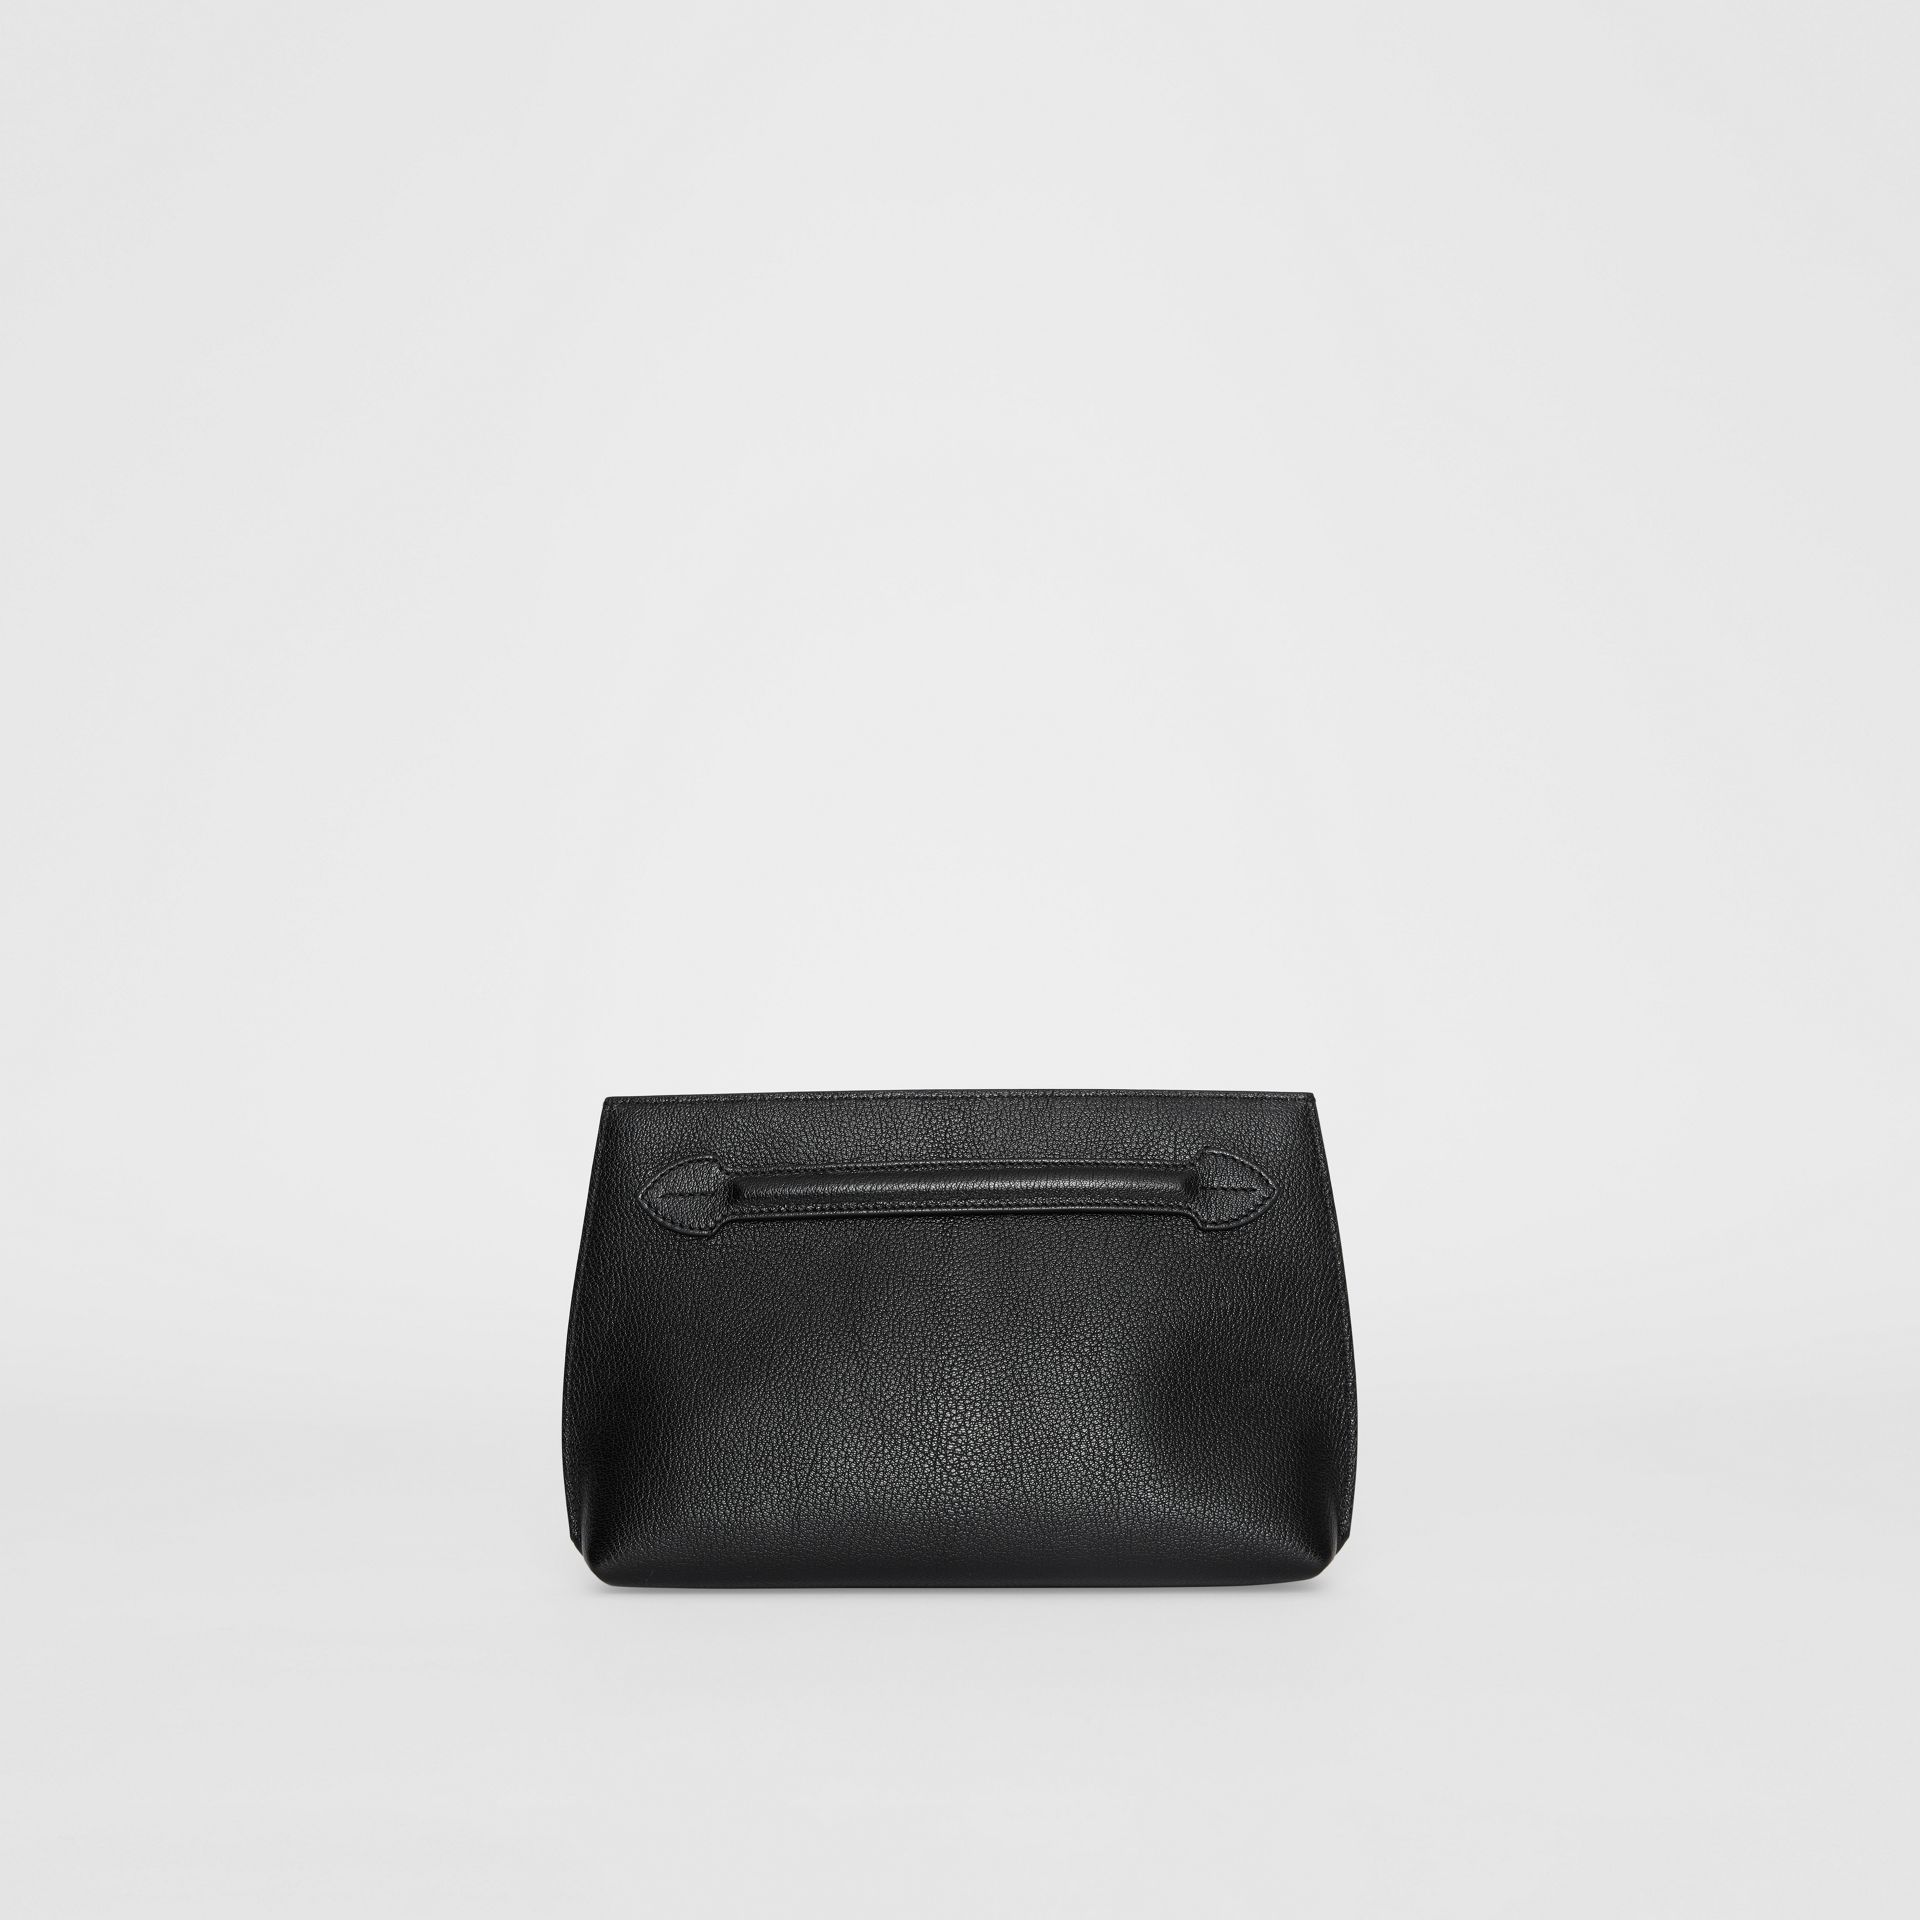 Grainy Leather Wristlet Clutch in Black - Women | Burberry Canada - gallery image 0